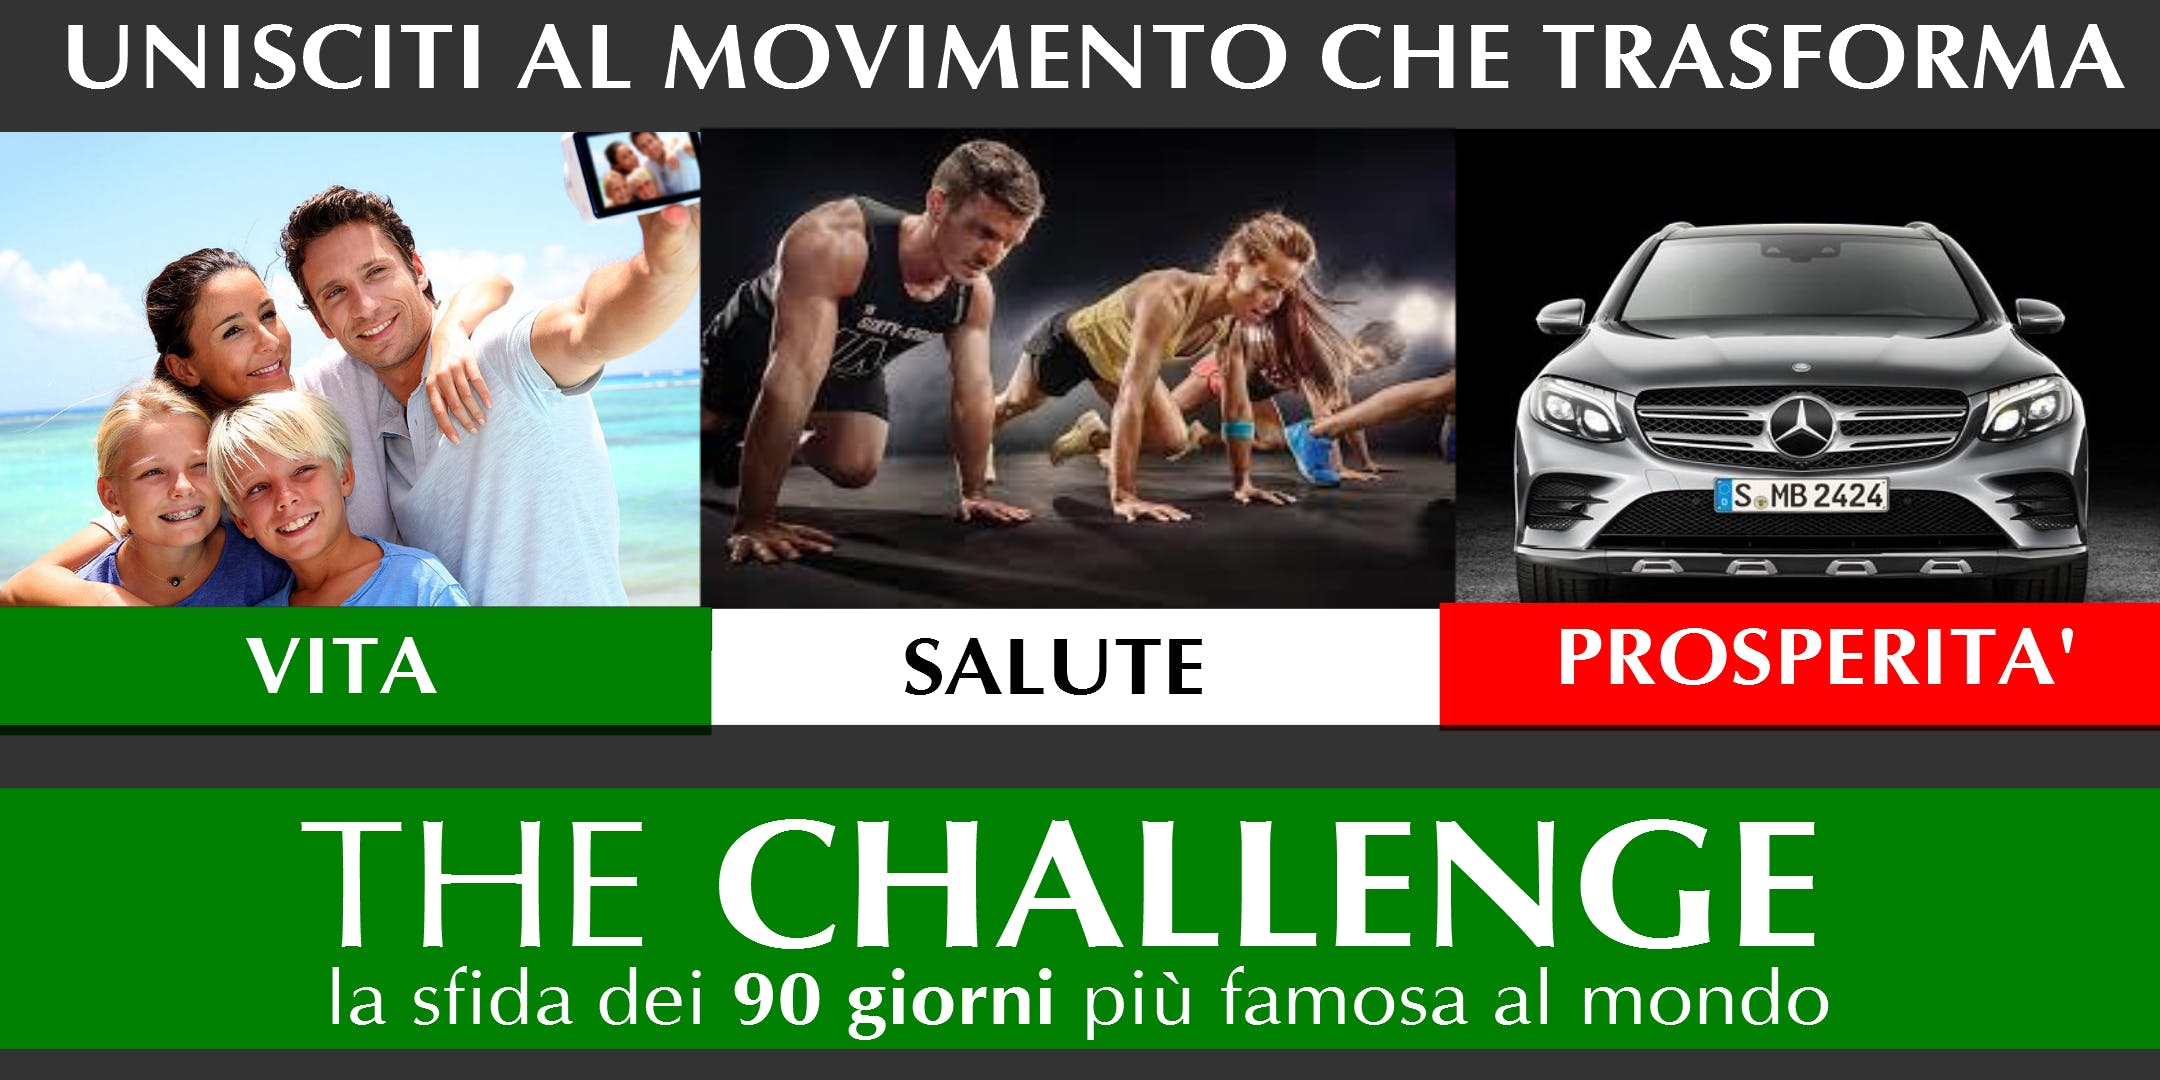 TheCHALLENGE (TO) 10/12